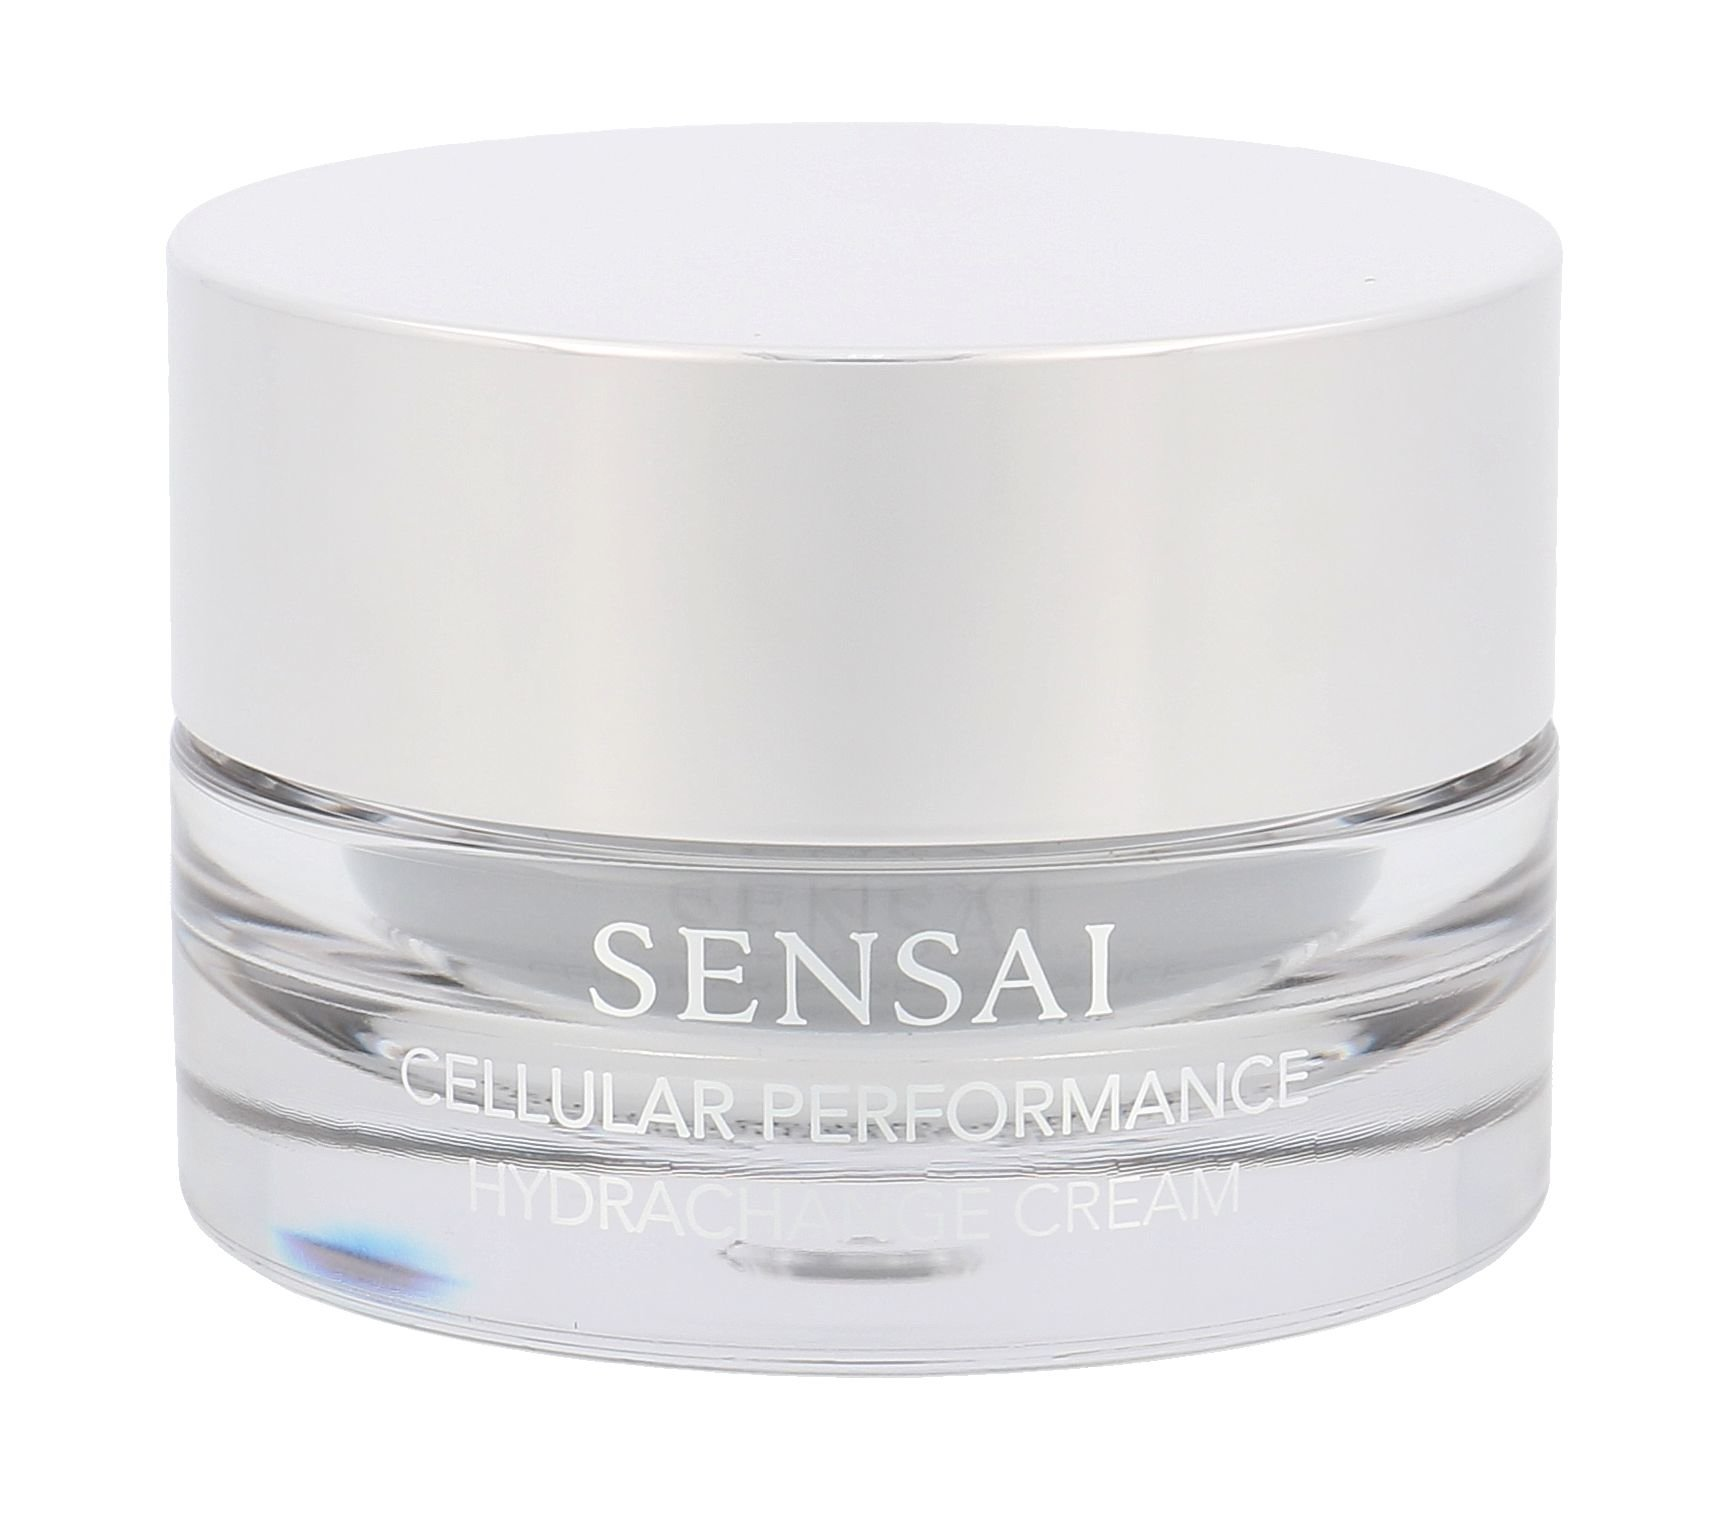 Kanebo Sensai Cellular Performance Hydrachange Cream Cosmetic 40ml